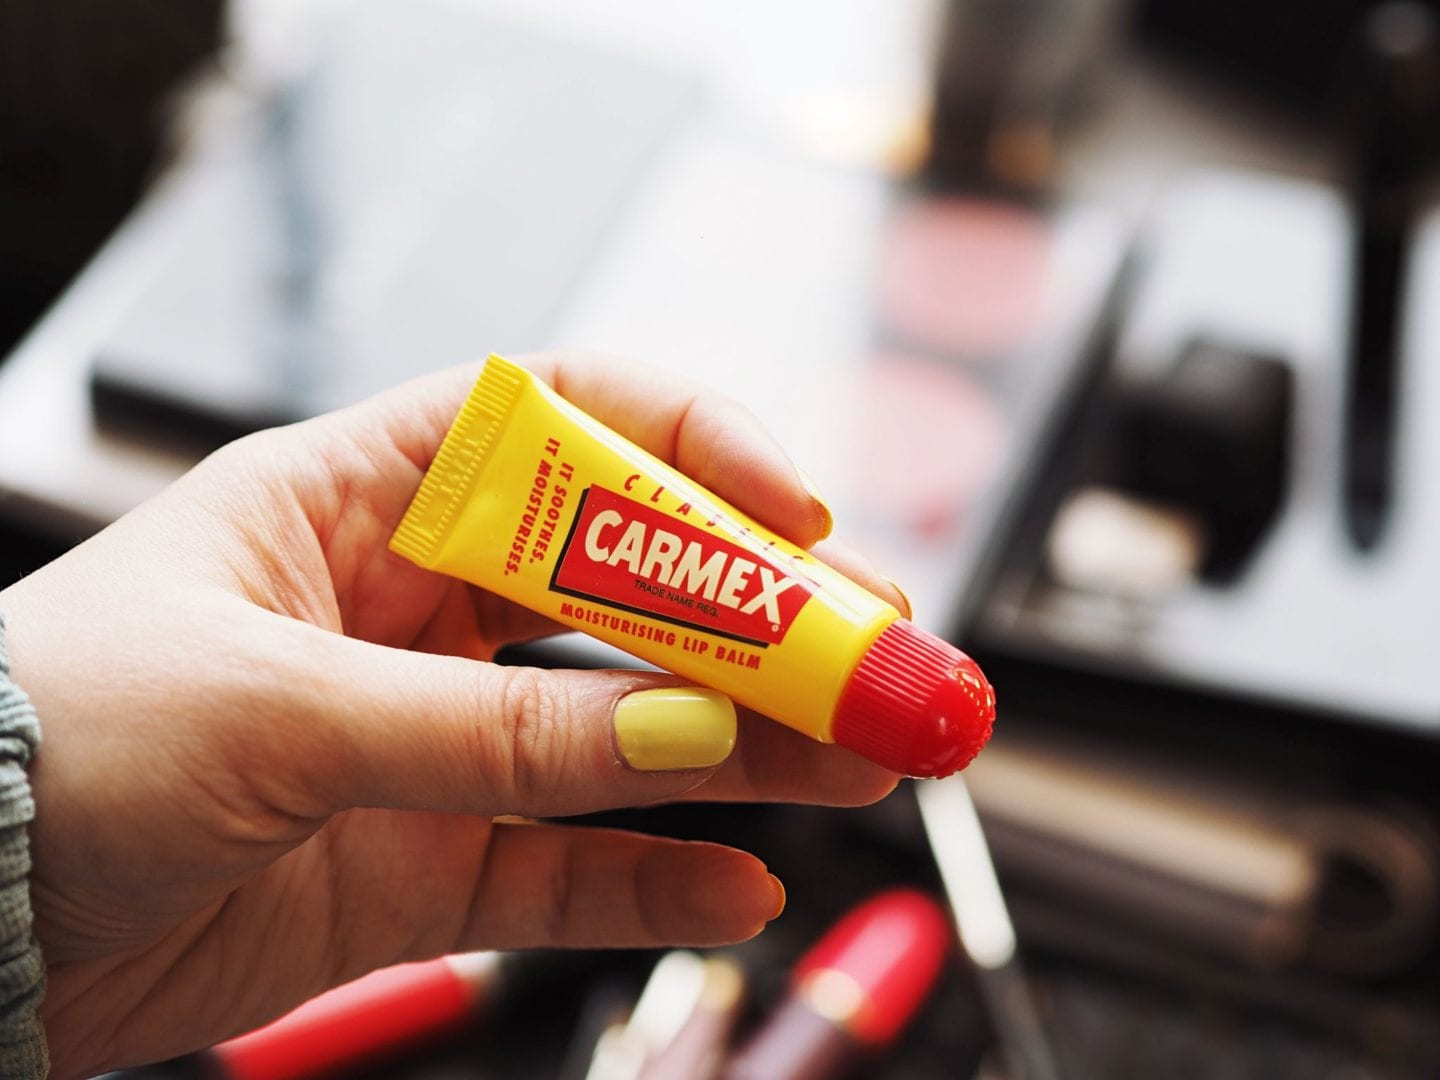 carmex x 2017 britains next top model shoot behind the scenes